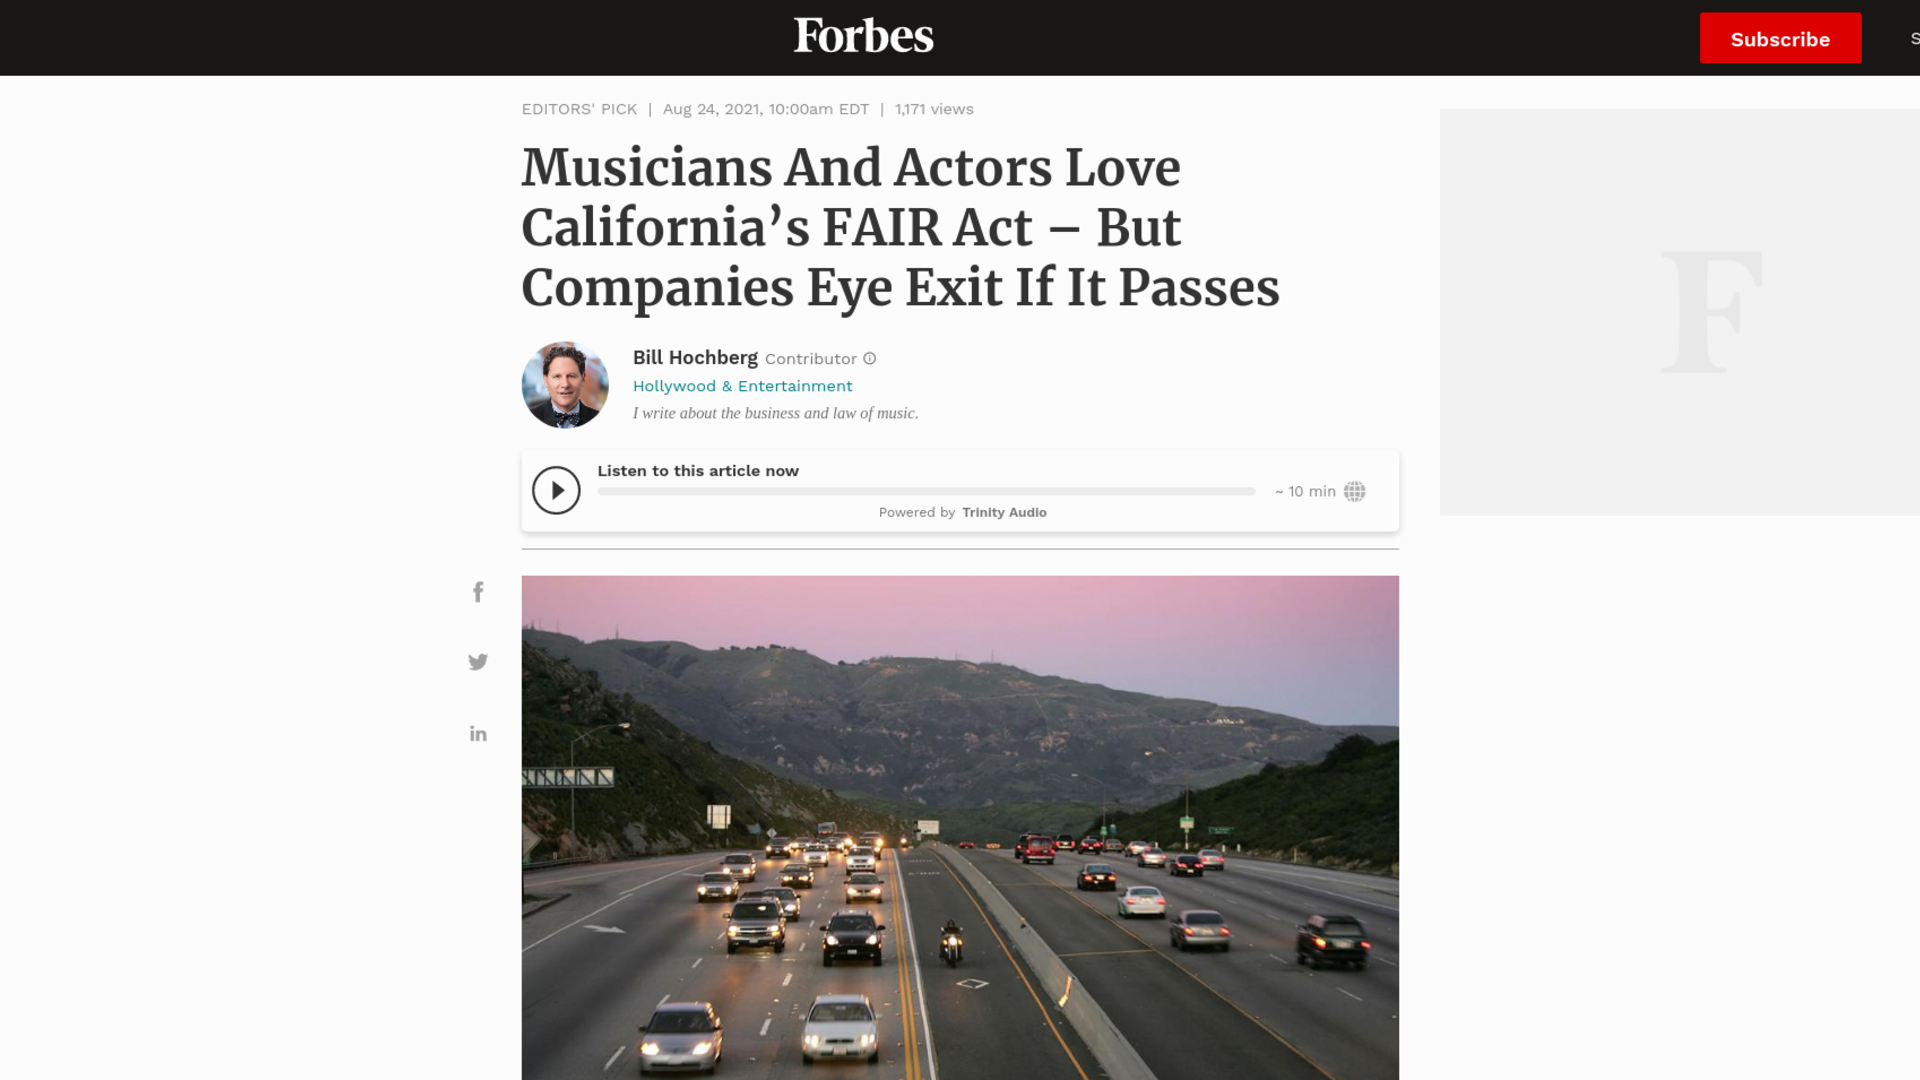 Fairness Rocks News Musicians And Actors Love California's FAIR Act – But Companies Eye Exit If It Passes